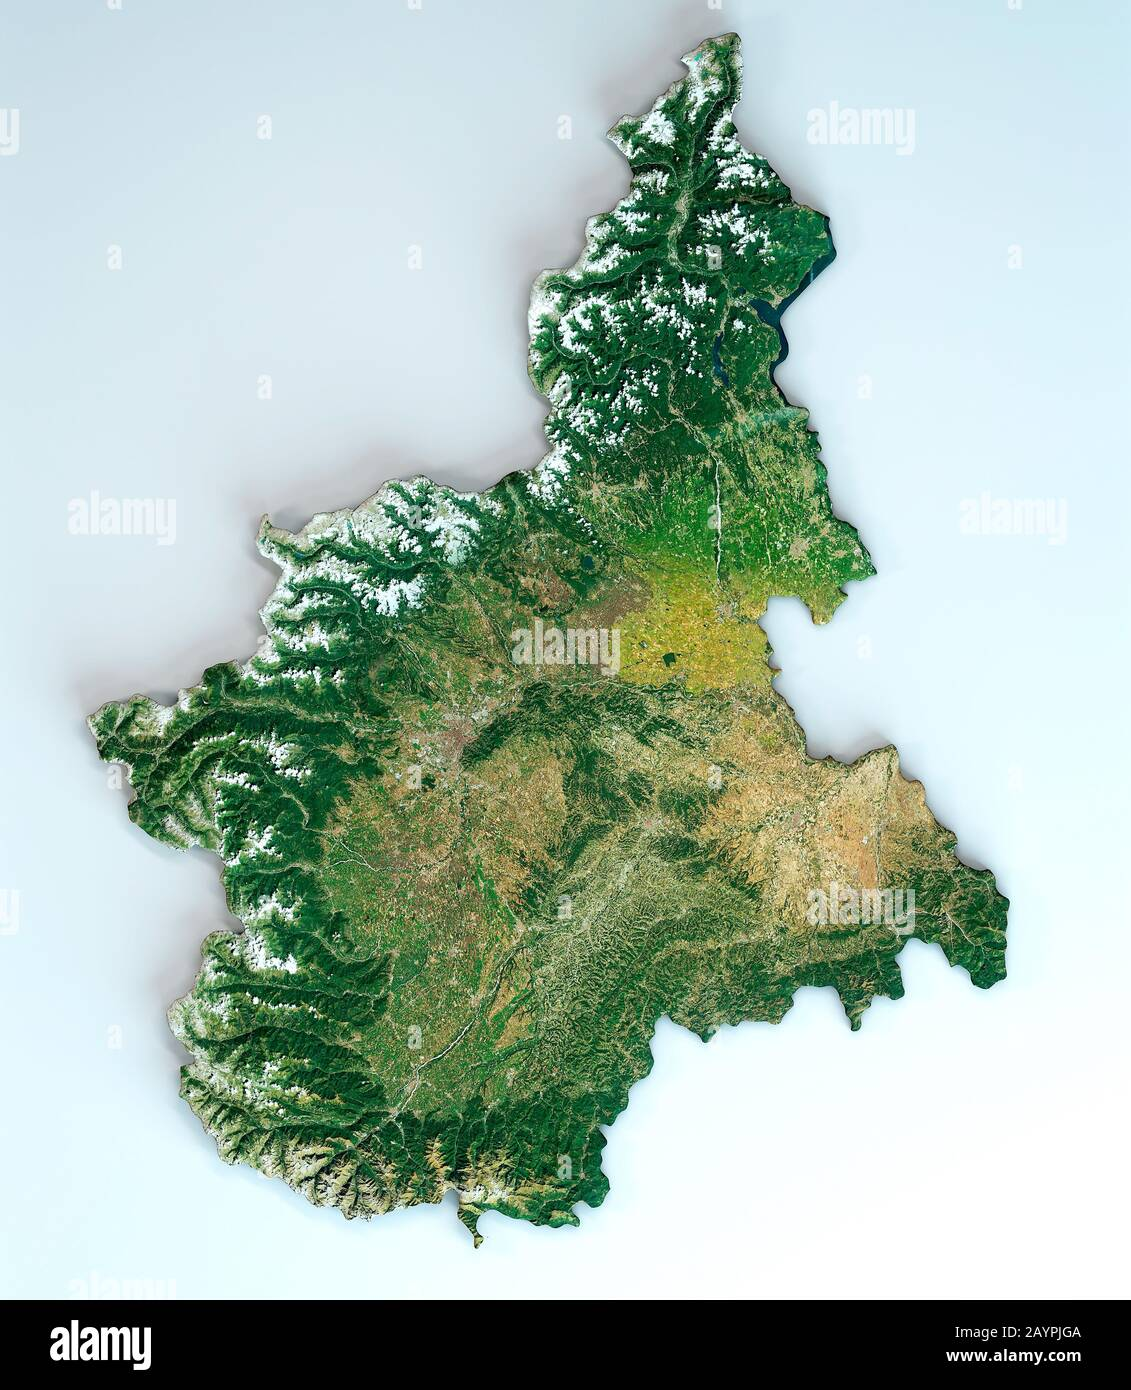 Cartina Geografica Piemonte Politica.Piemonte Map High Resolution Stock Photography And Images Alamy